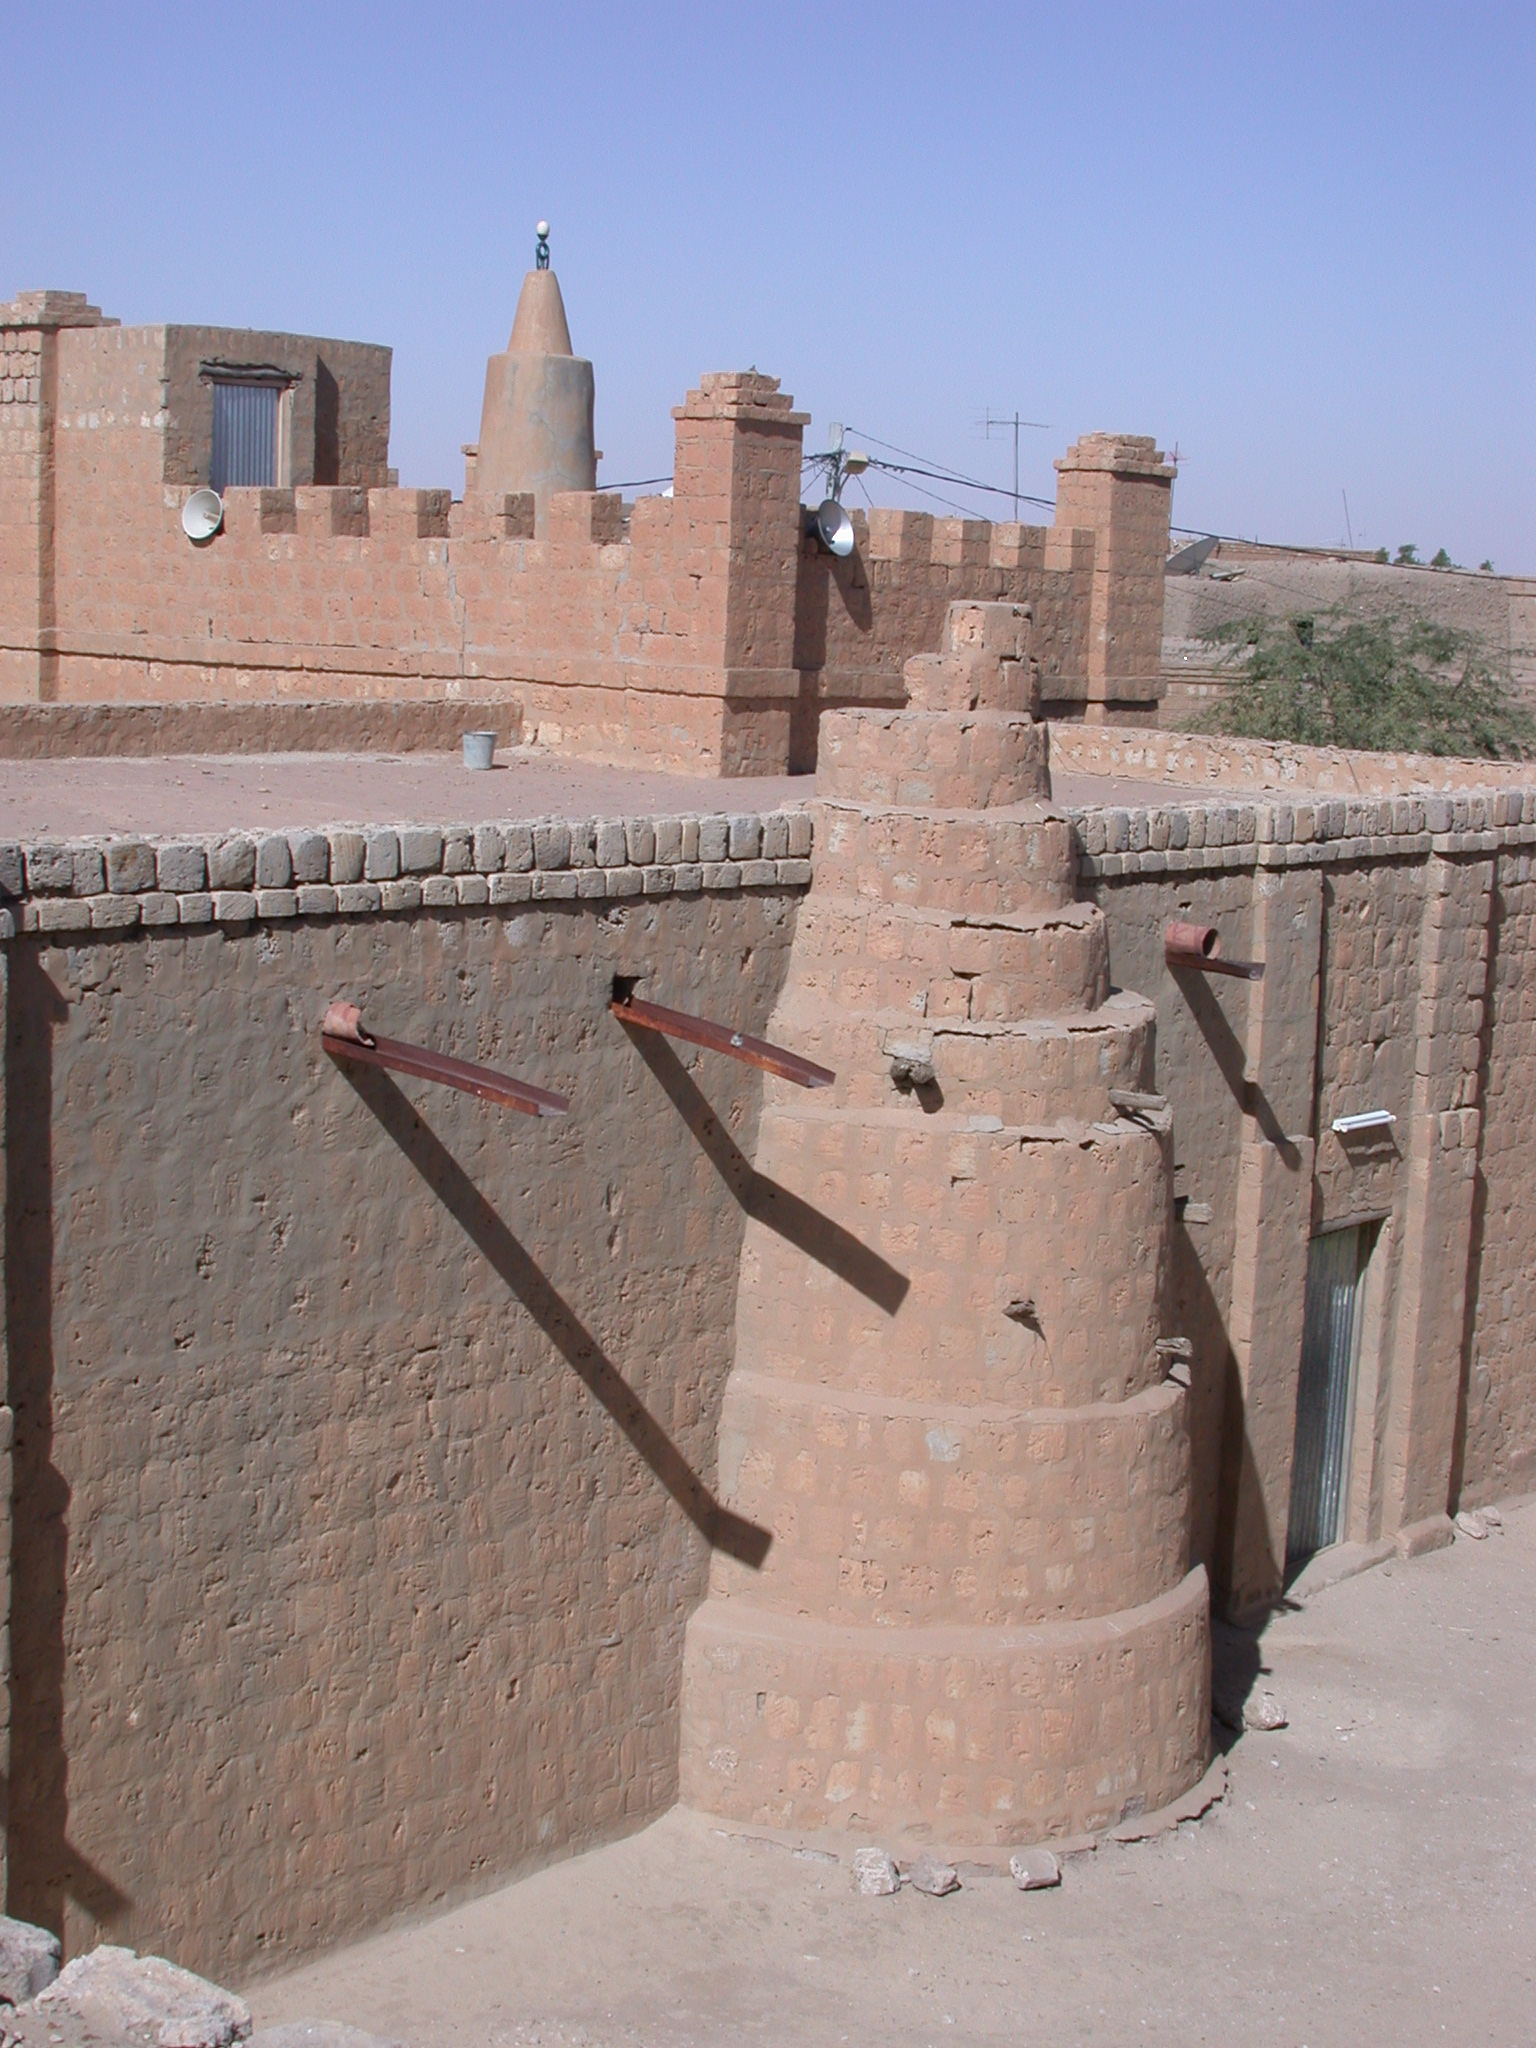 View of Ostrich-Egg on Minaret and Layered Tower of Mosque, Timbuktu, Mali